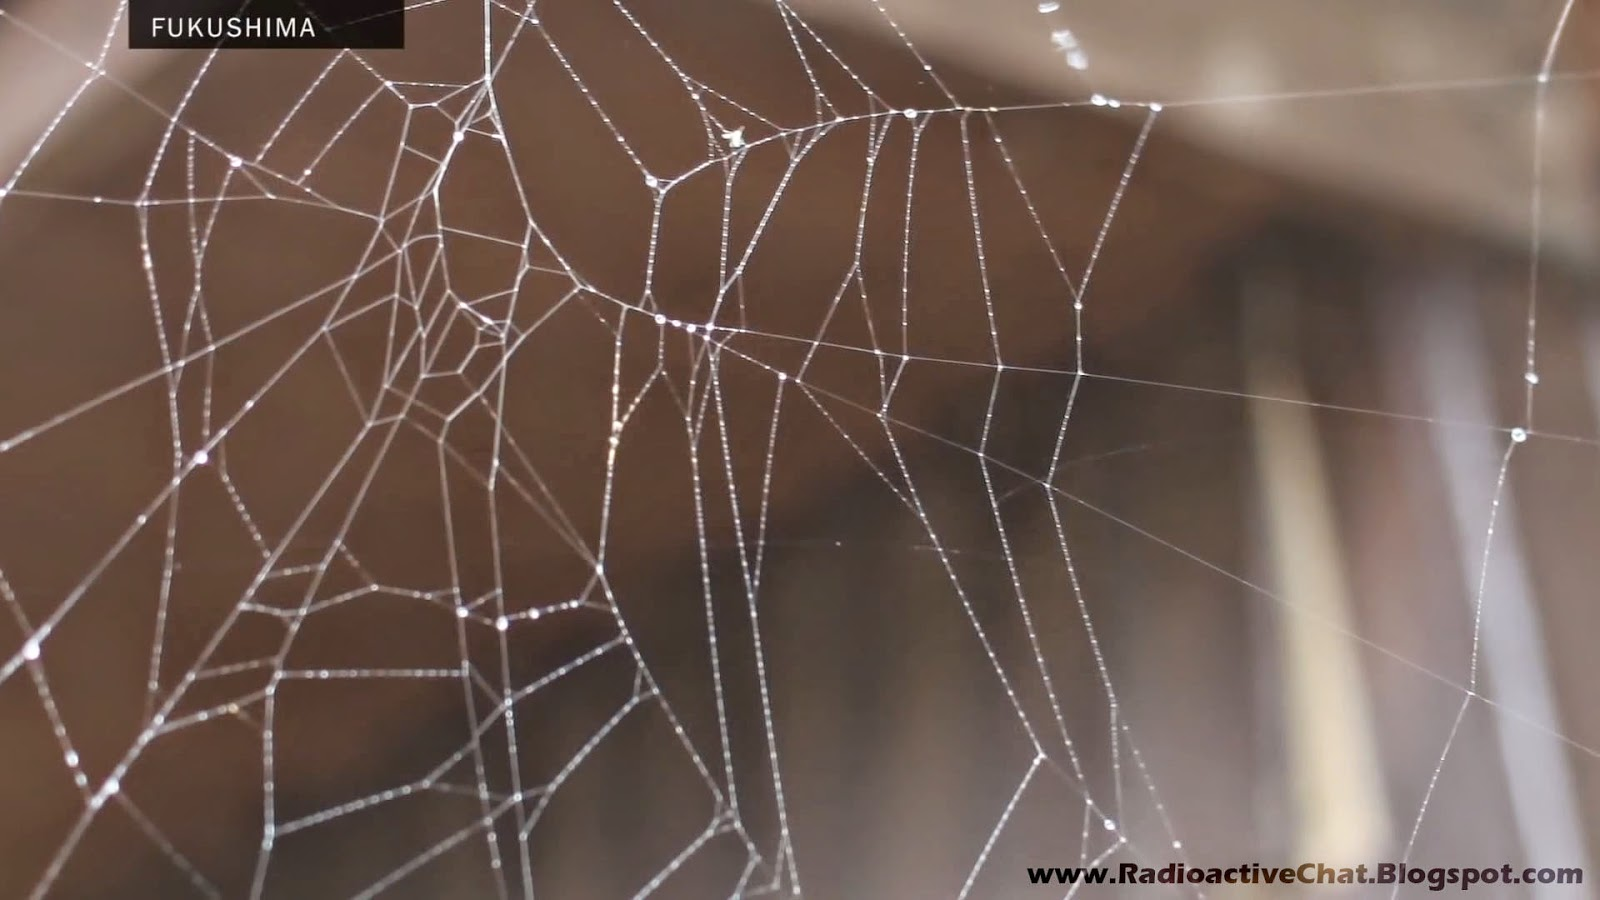 The Animals of Chernobyl - Deformed Spider Webs Fukushima Fallout Radiation